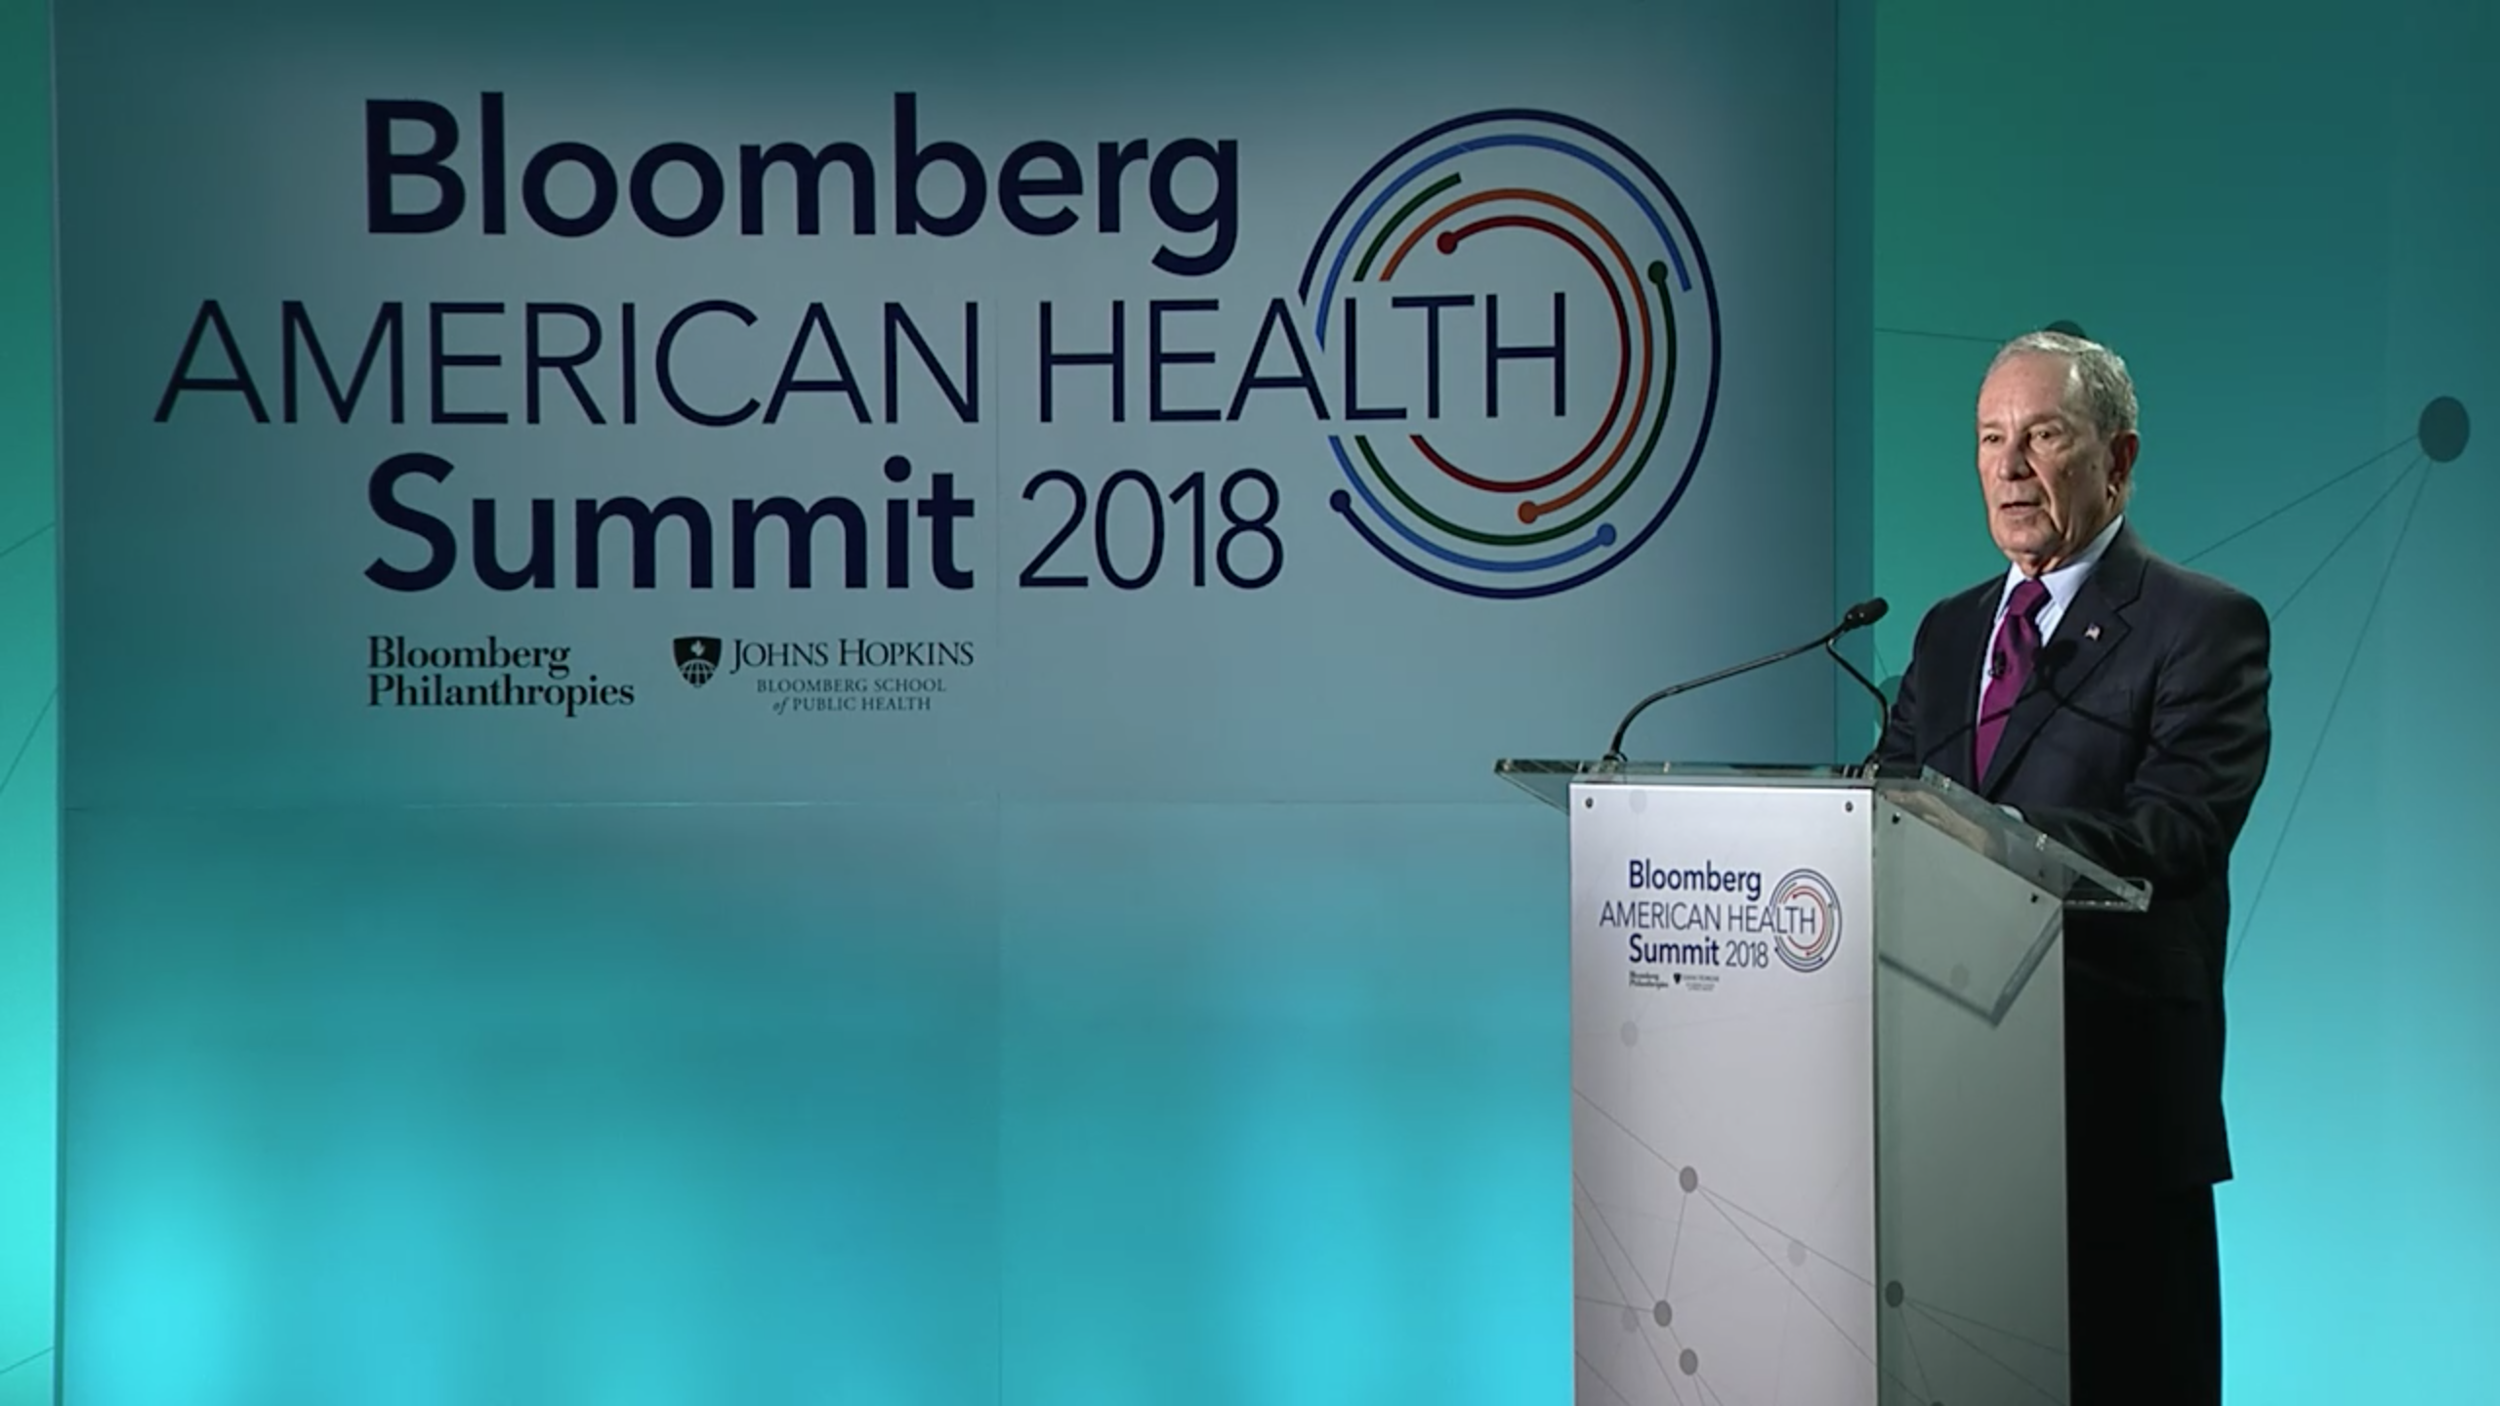 Bloomberg American Health Summit